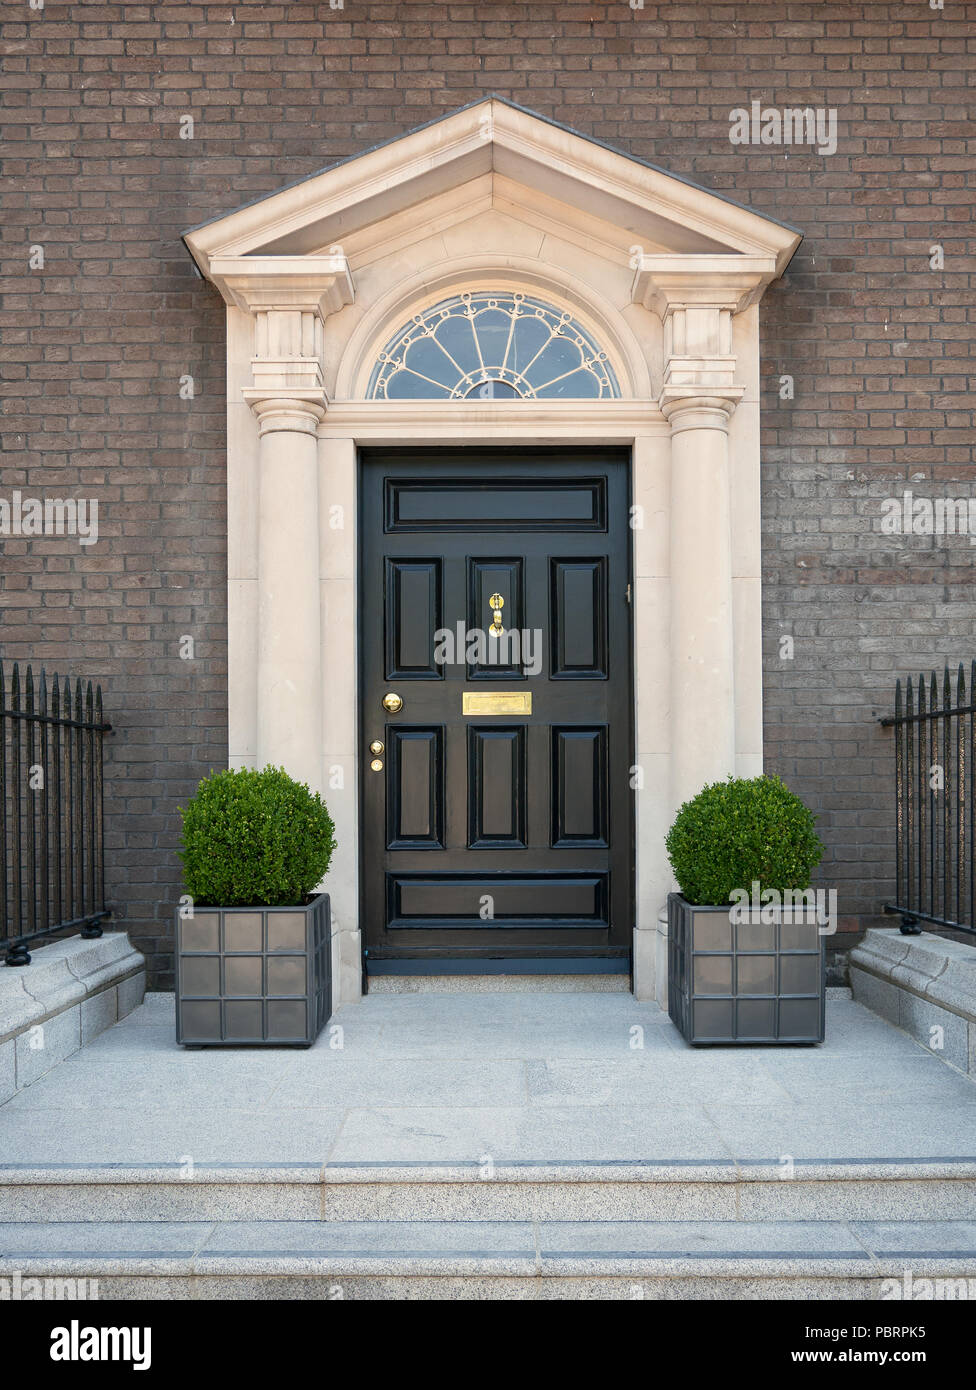 A typical entrance in Dublin with black door and golden handles, a staircase and two plants - Stock Image